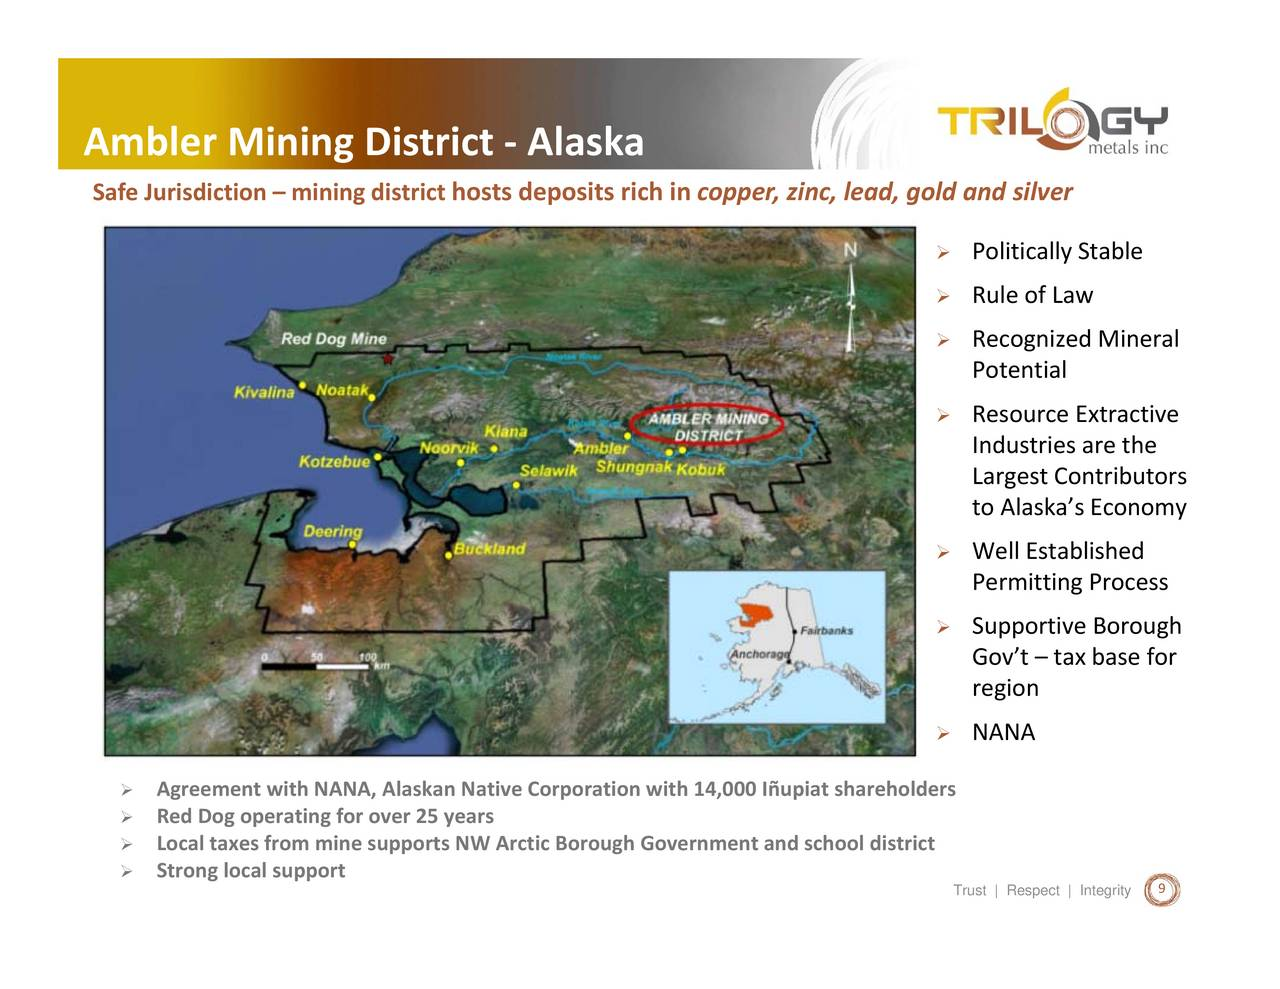 Alaska northwest arctic county noatak - Trilogy Metals Tmq Presents At The 85th Annual Pdac Conference Trilogy Metals Inc Nysemkt Tmq Seeking Alpha